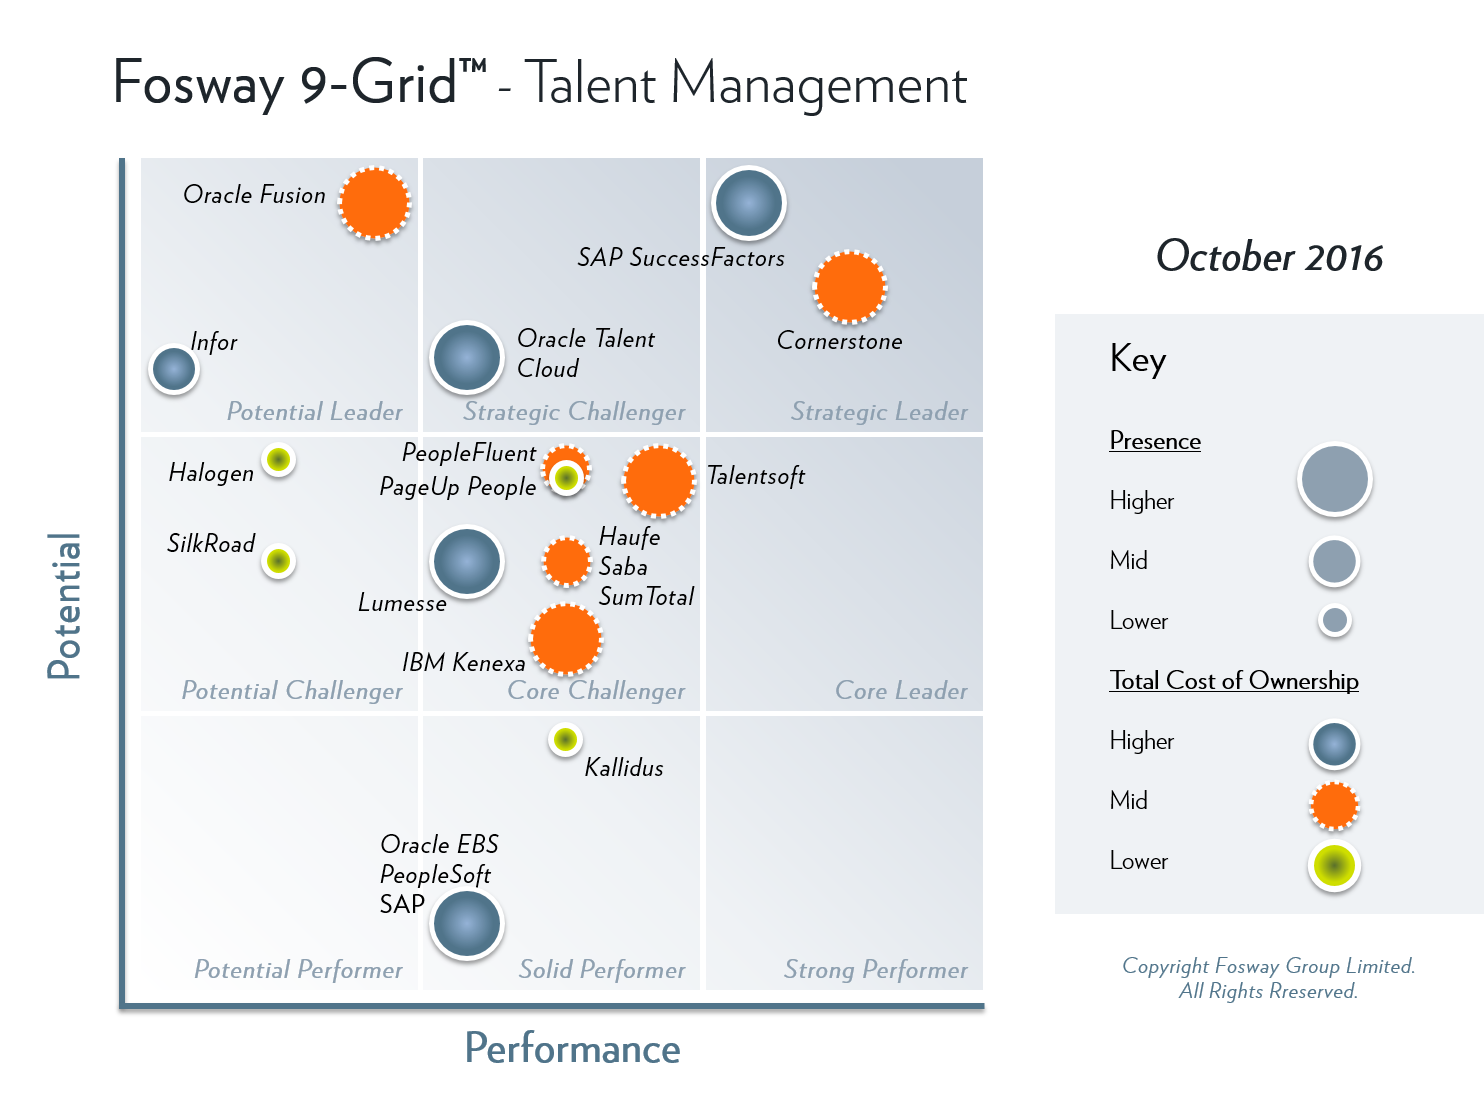 Fosway 9-Grid Integrated Talent Management Systems 2016